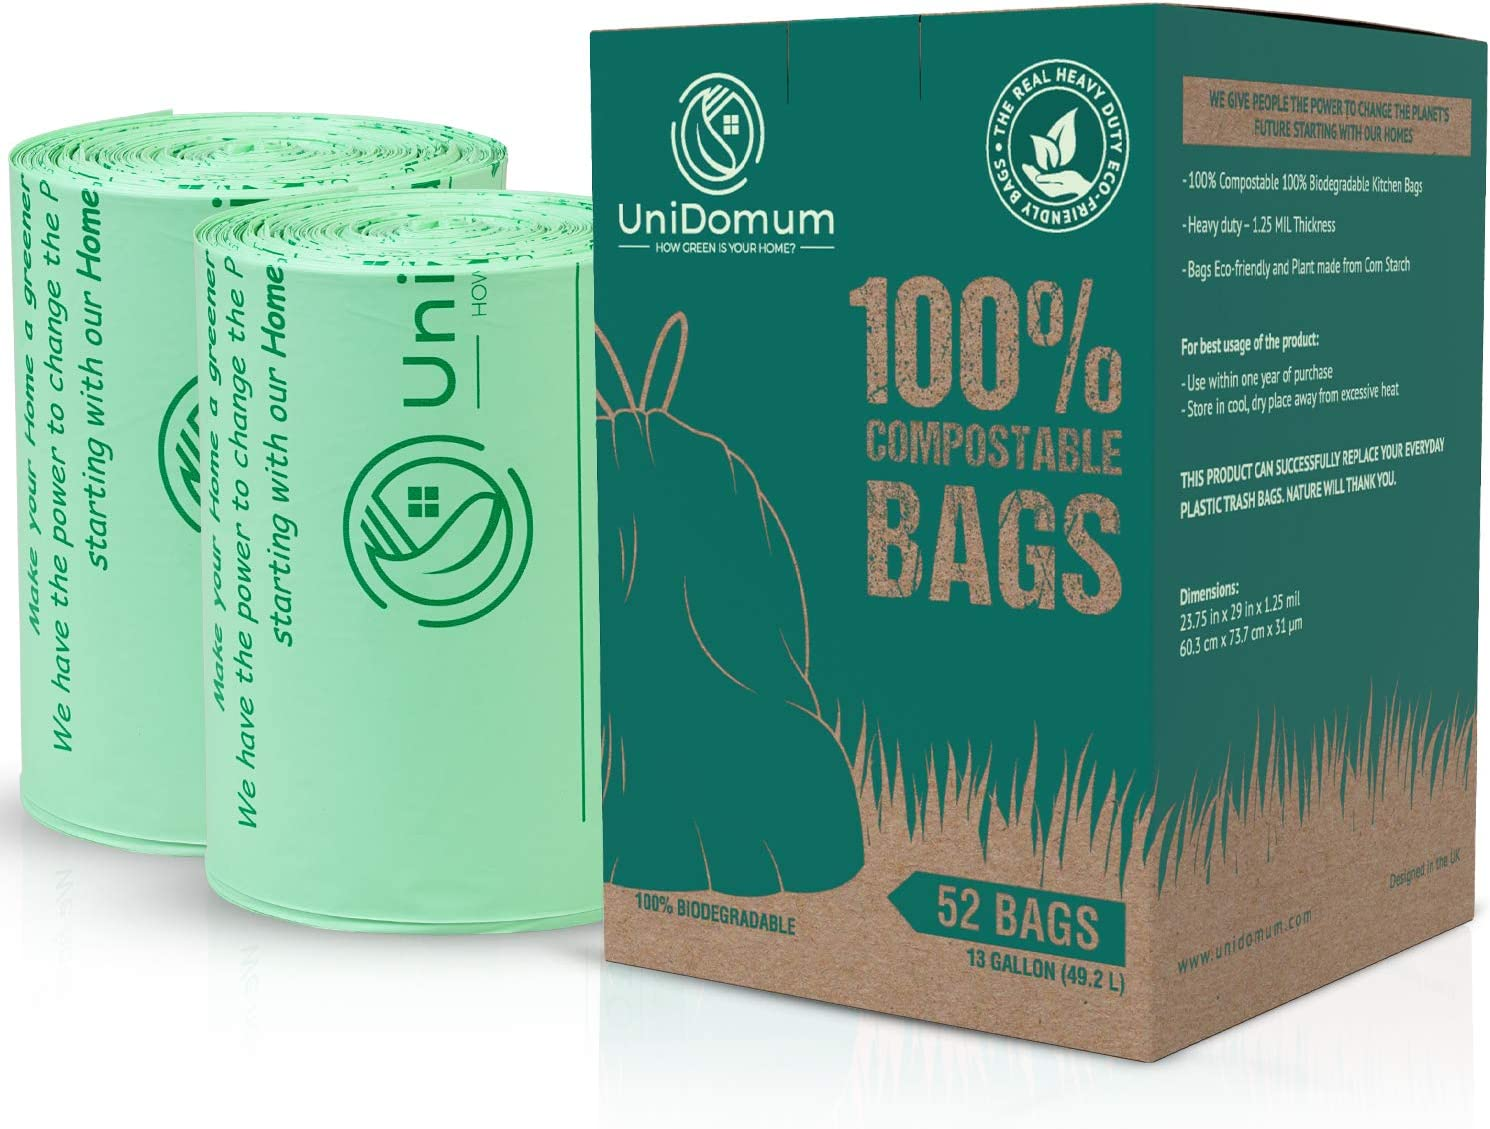 Heavy-Duty 100% Compostable & Biodegradable Trash Bags [1.25MIL] by UniDomum, ASTM D6400, 13 Gallon/49.2L | Eco-Friendly Kitchen/Food Waste Bags That are BPI & OK Compost Home Certified, 52 Count